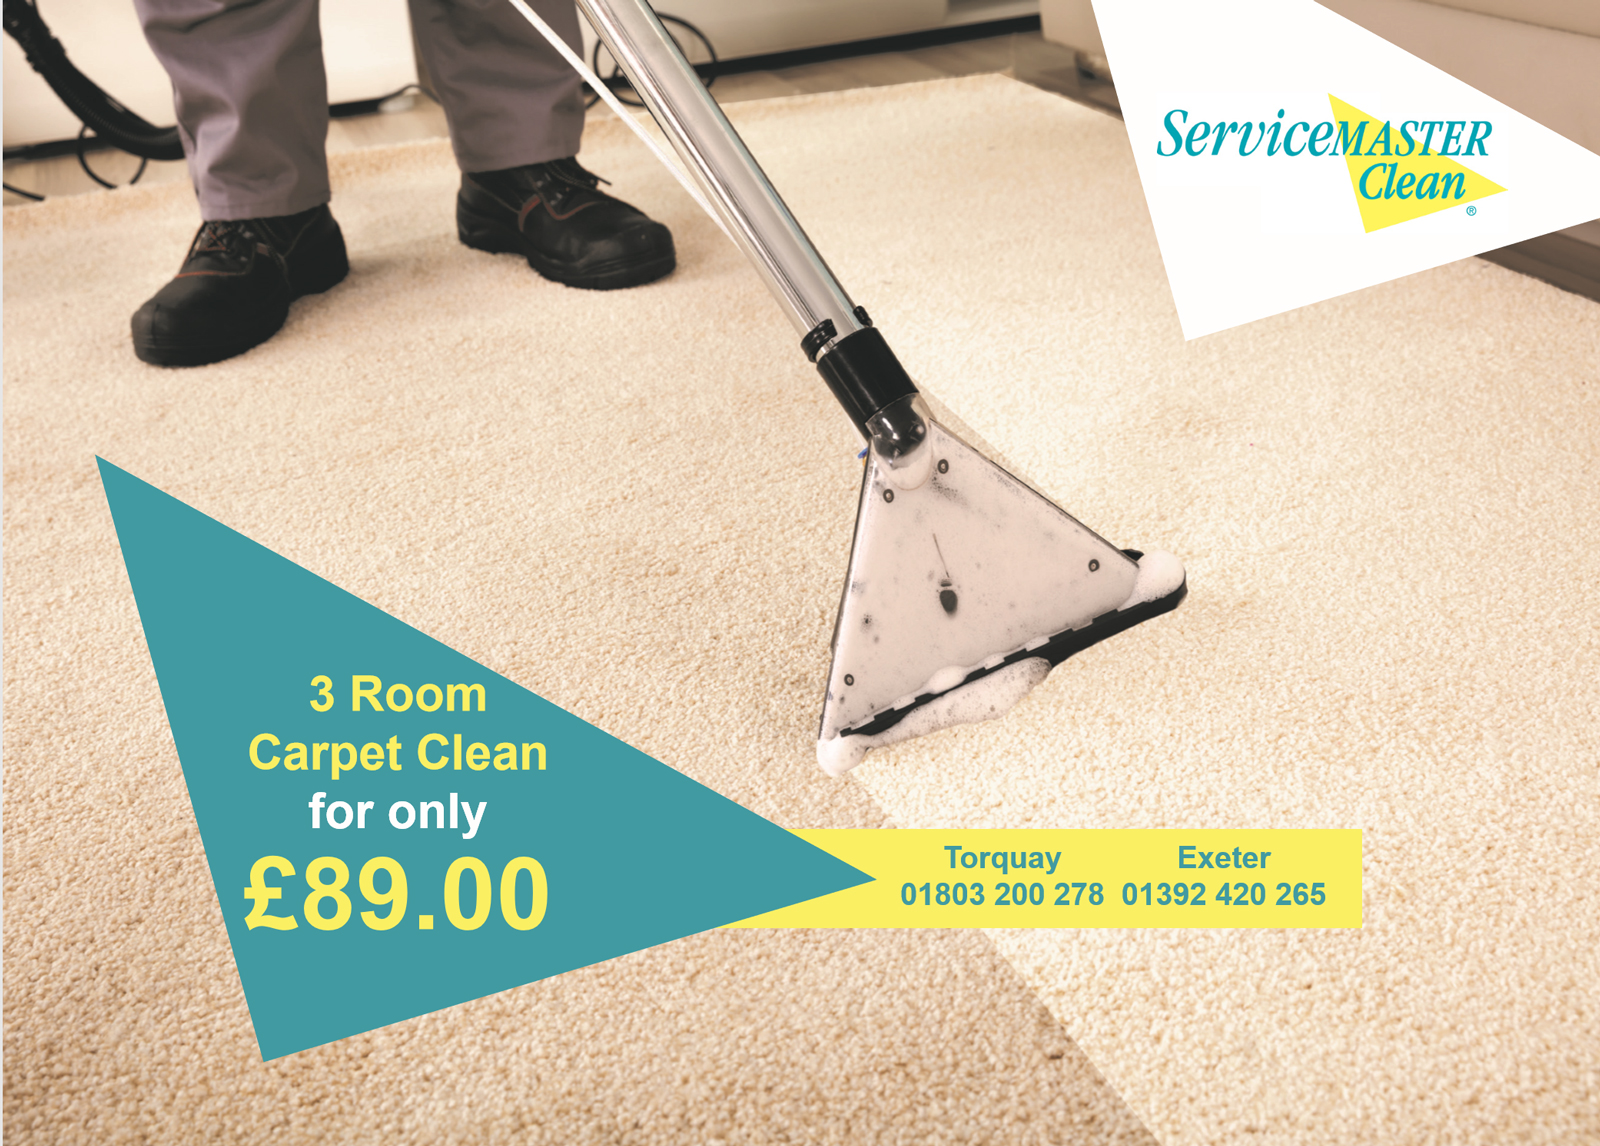 Christmas Carpet Cleaning.Cleaner Carpets For Christmas Servicemaster Clean Torbay